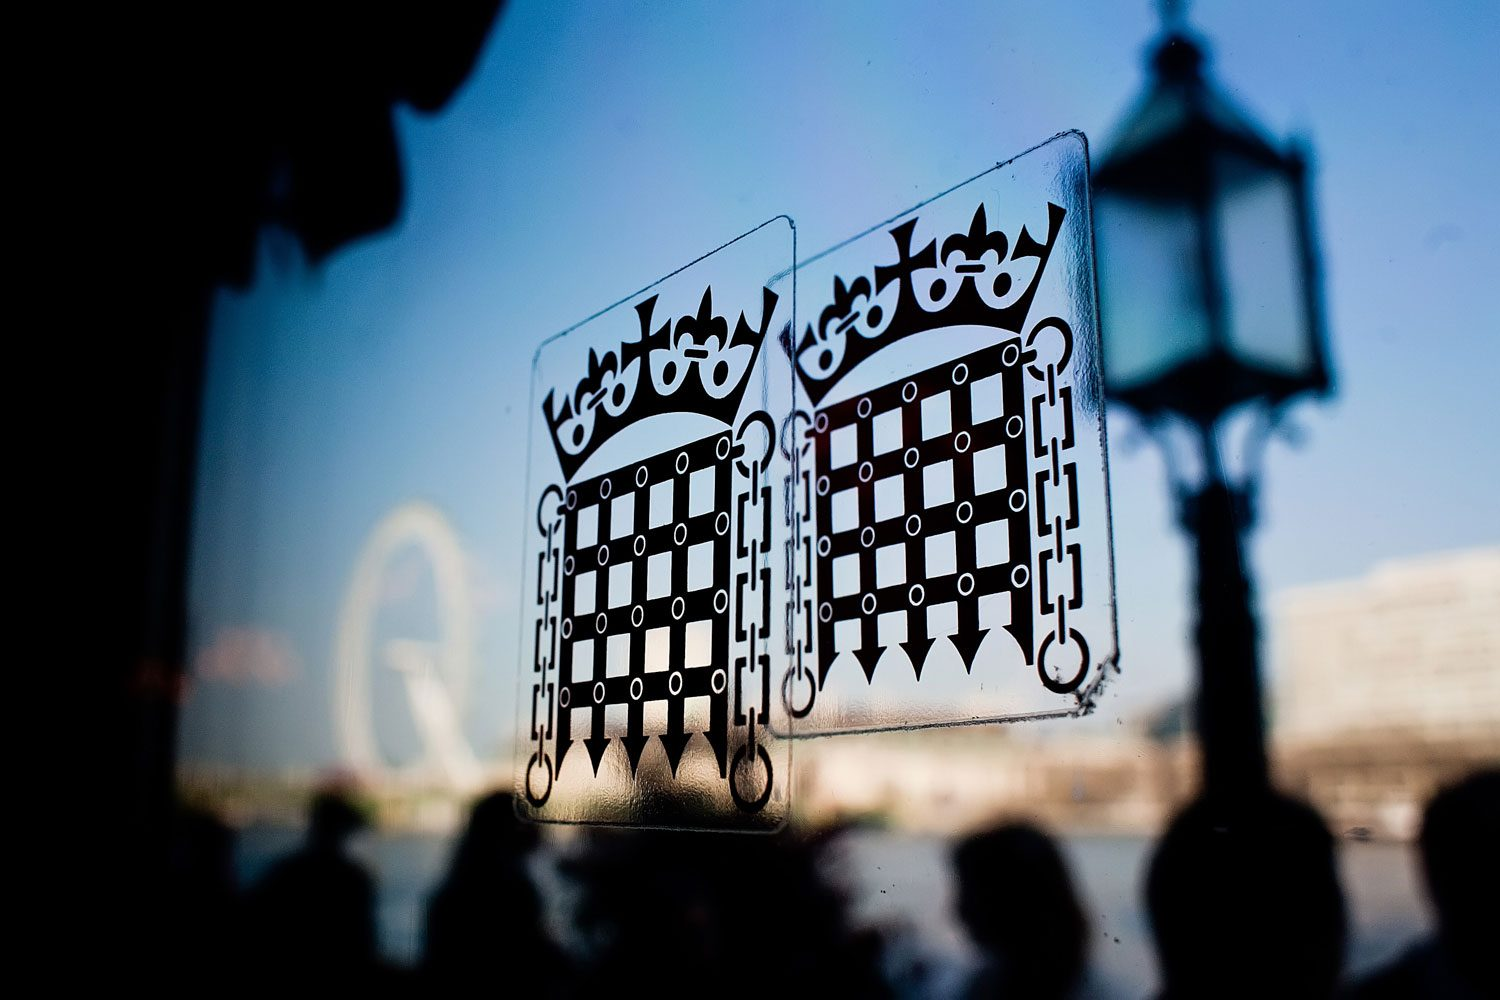 house of lords signage